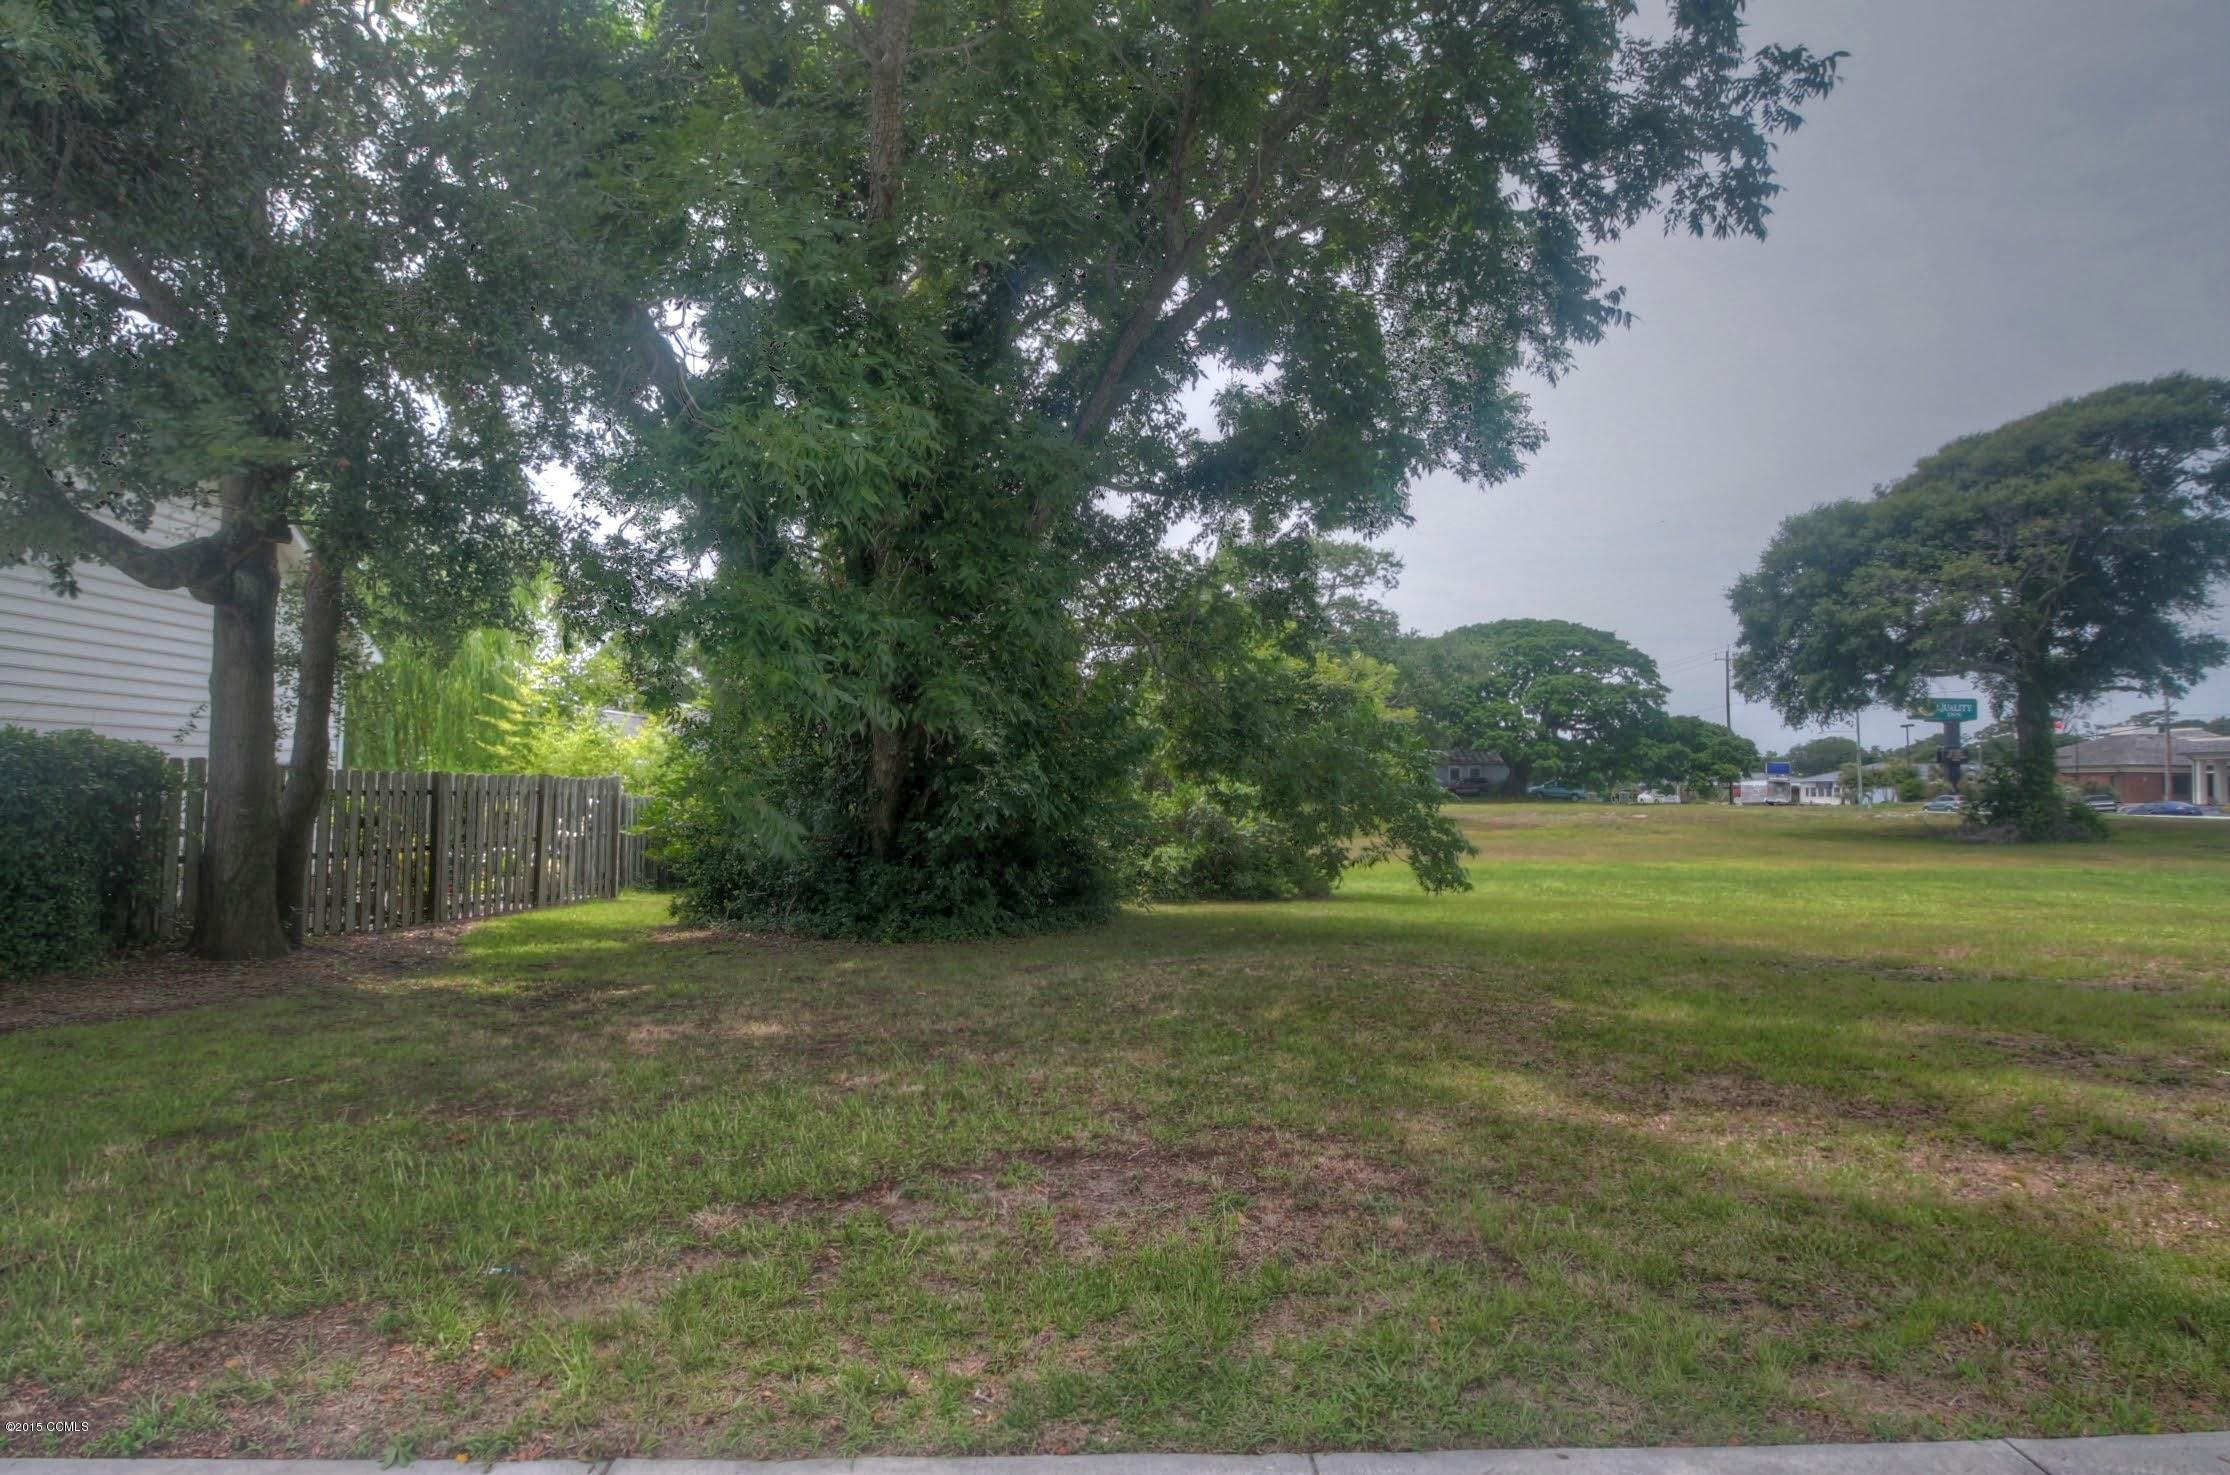 104 30th Street,Morehead City,North Carolina,Residential land,30th,11503564